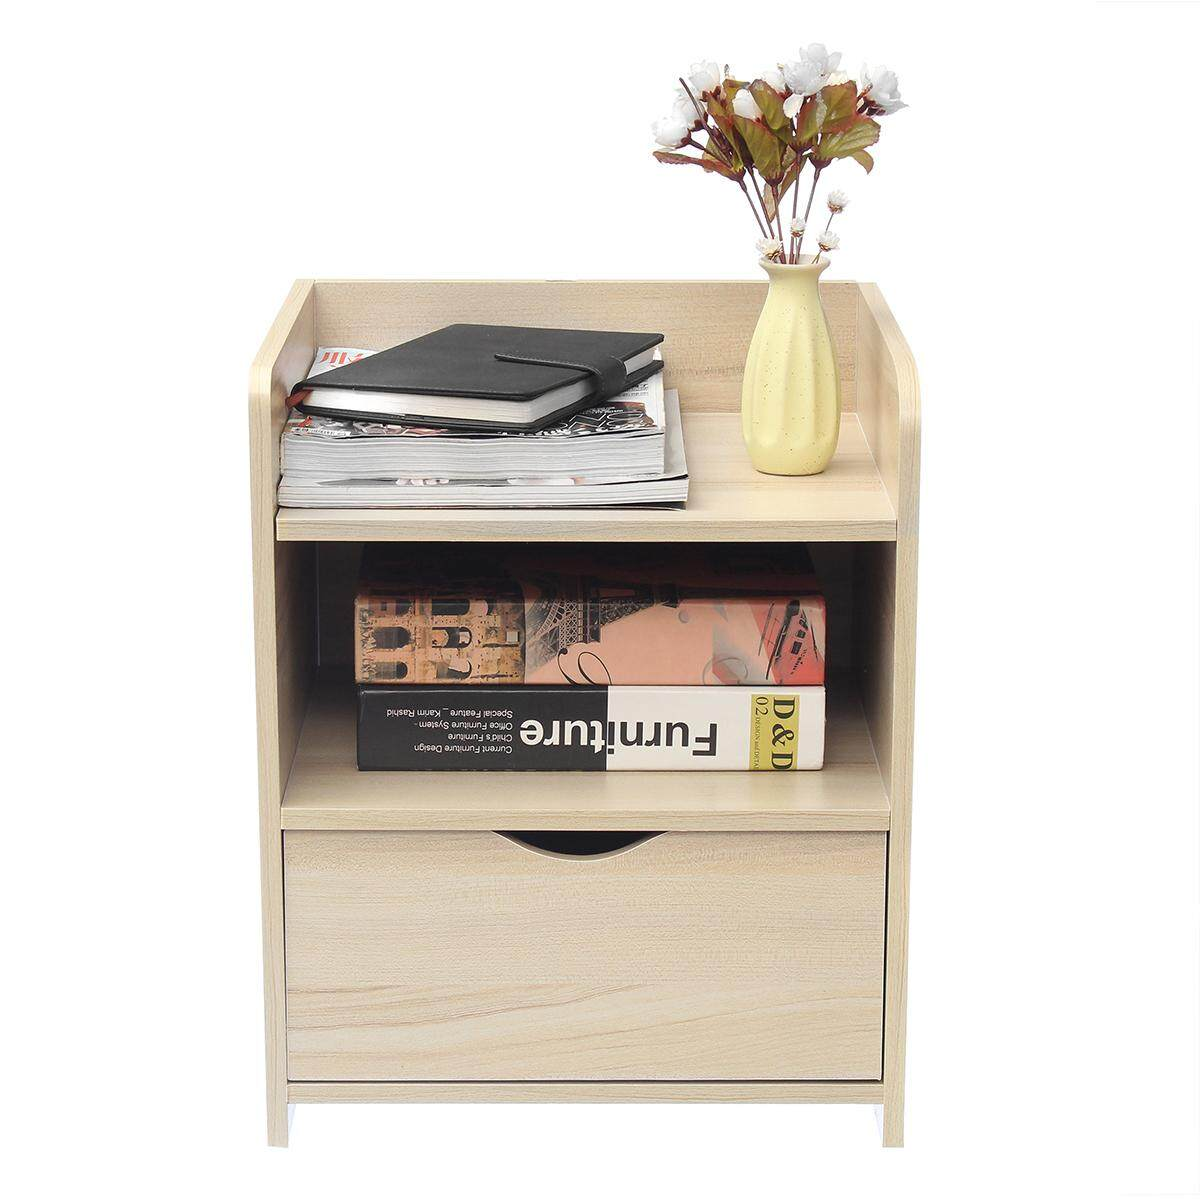 Modern Wooden Bedside Table Nightstand Storage Bedroom Cabinet Shelf Units